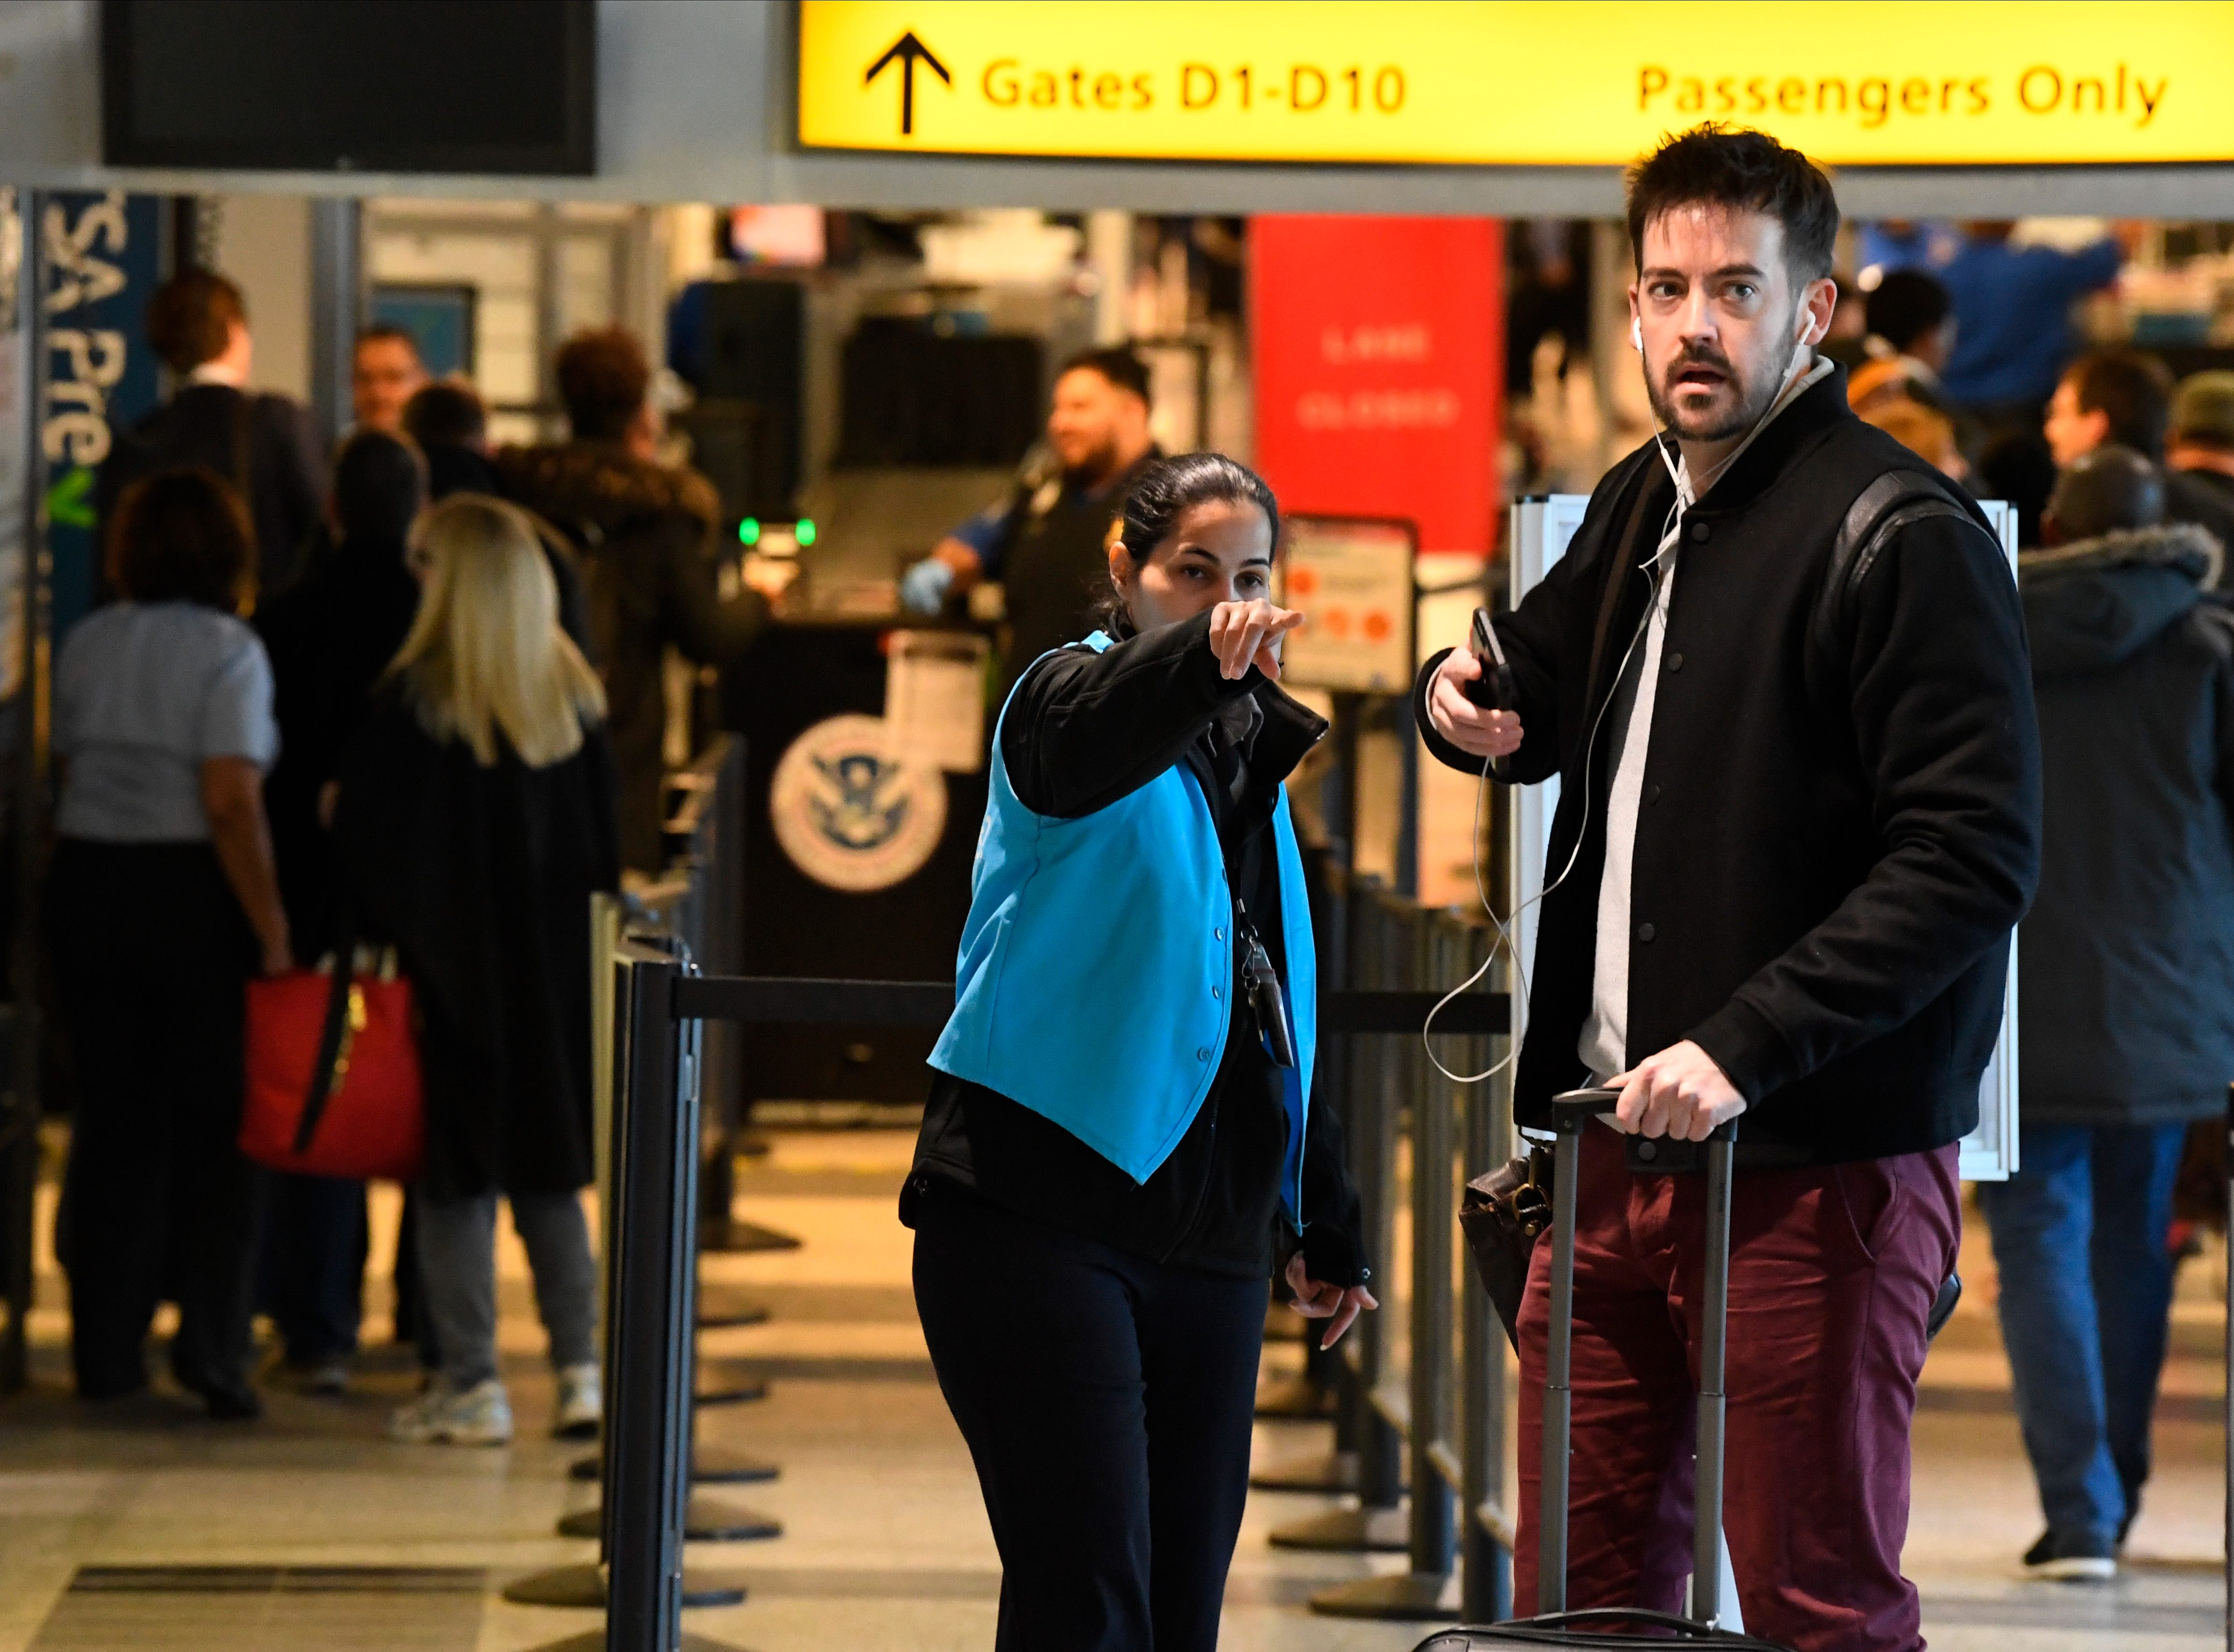 A passenger gets help at Central terminal B security check-in. Staffing issues related to the government slowdown caused delays at New York's LaGuardia Airport .